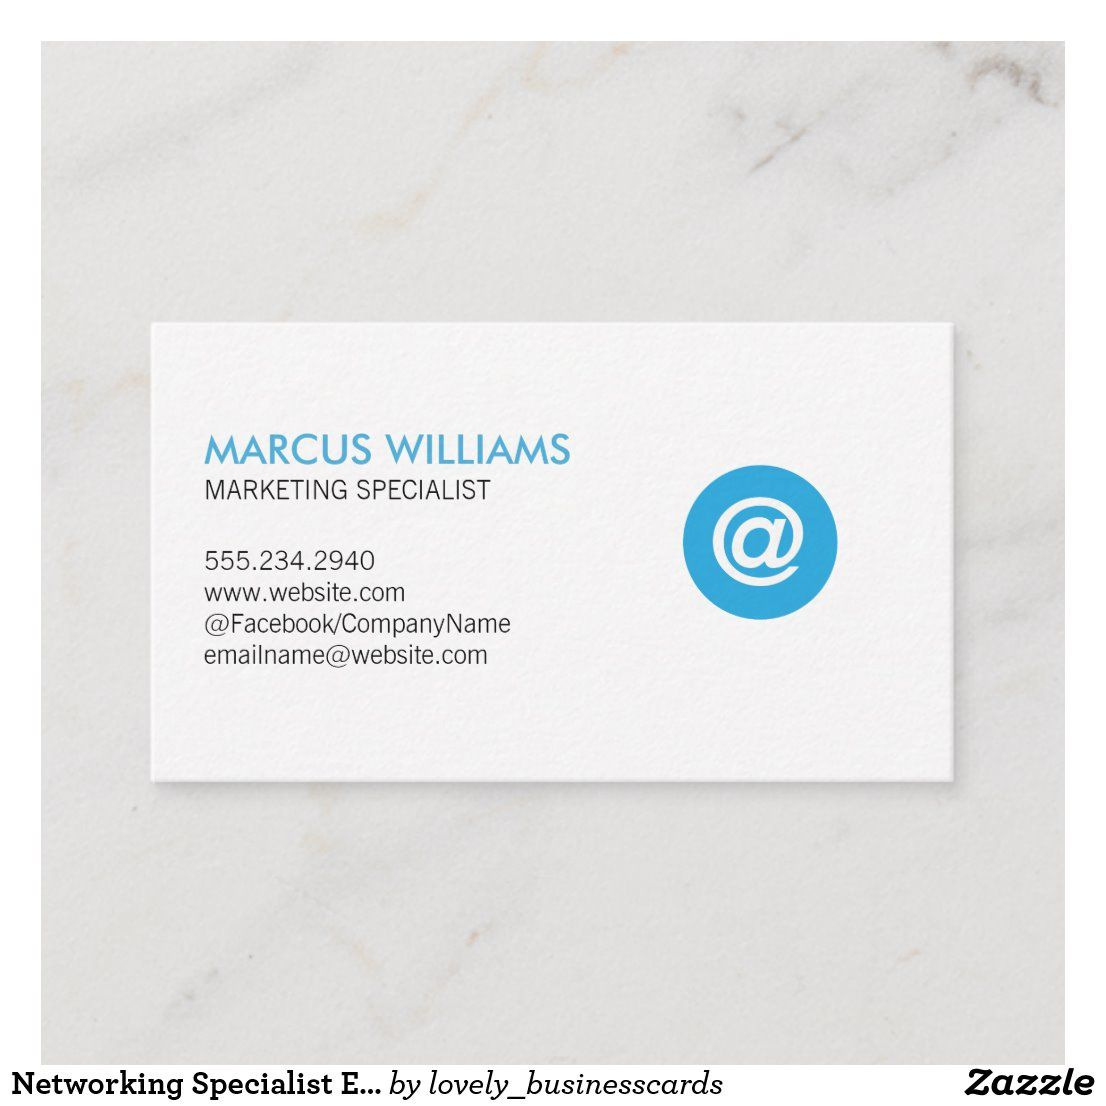 Networking Specialist Email Icon Business Card Zazzle Com Corporate Business Card Design Business Cards Creative Business Card Design Creative